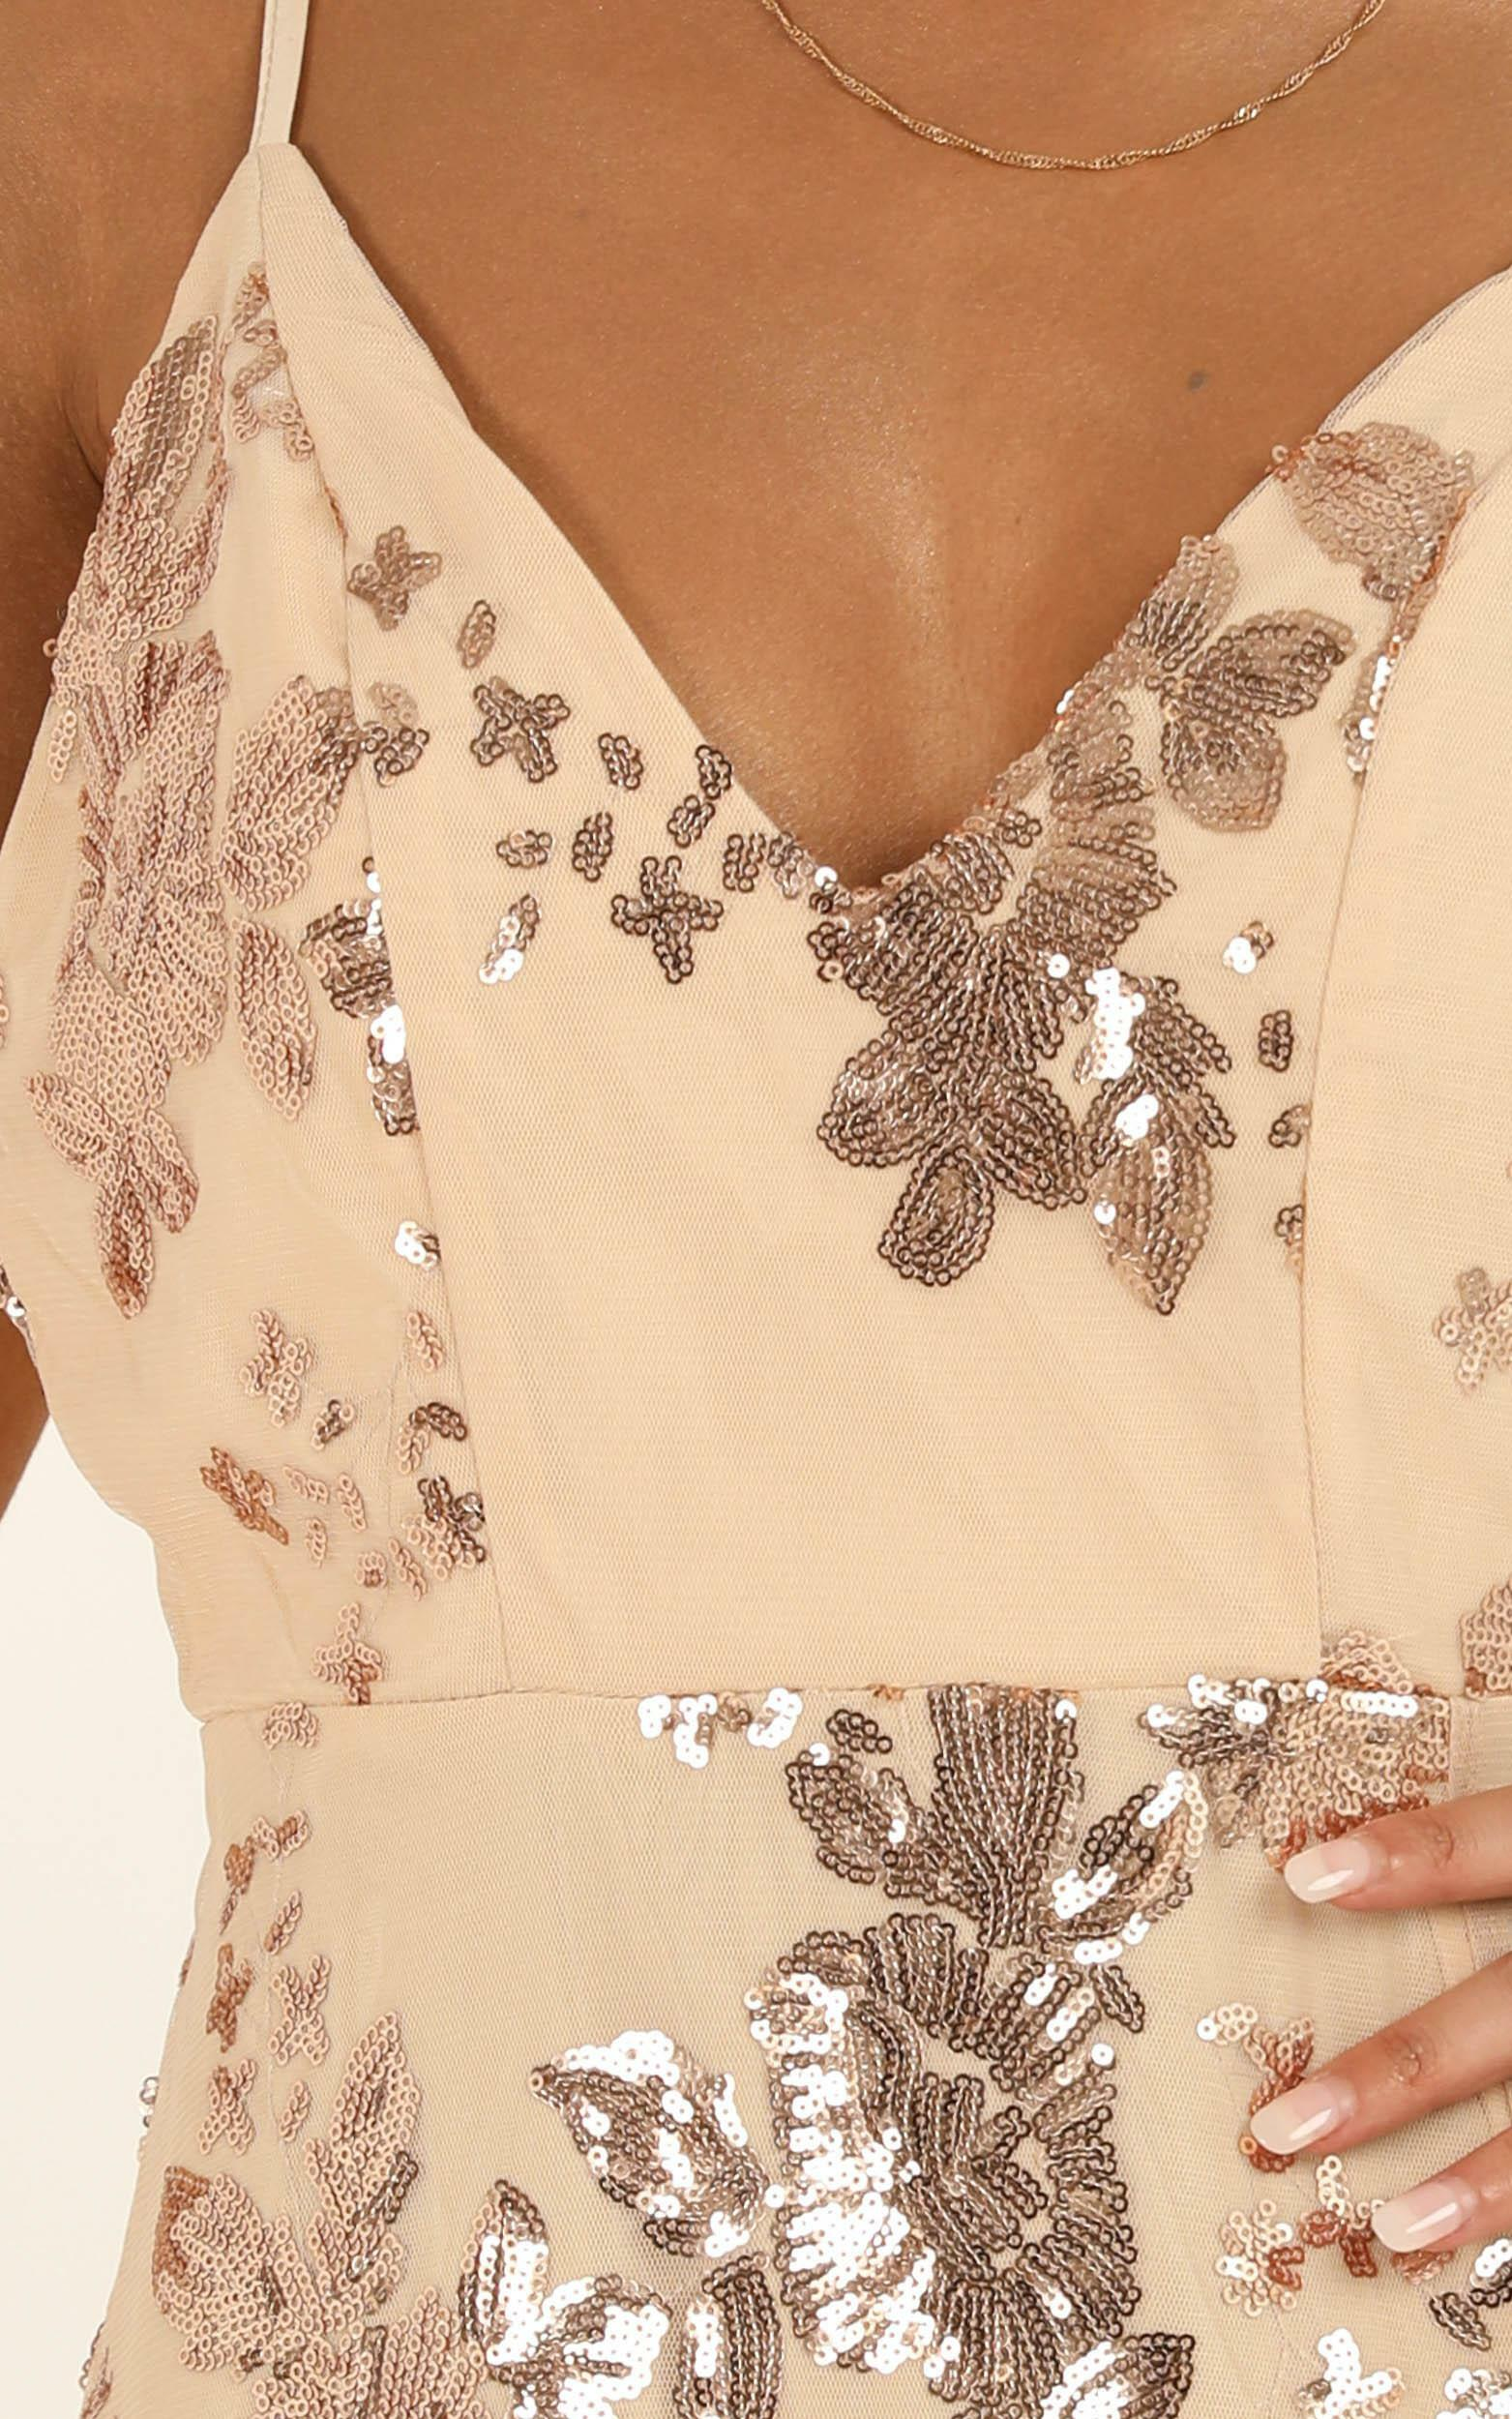 Know About You dress in rose gold sequin - 14 (XL), Rose Gold, hi-res image number null